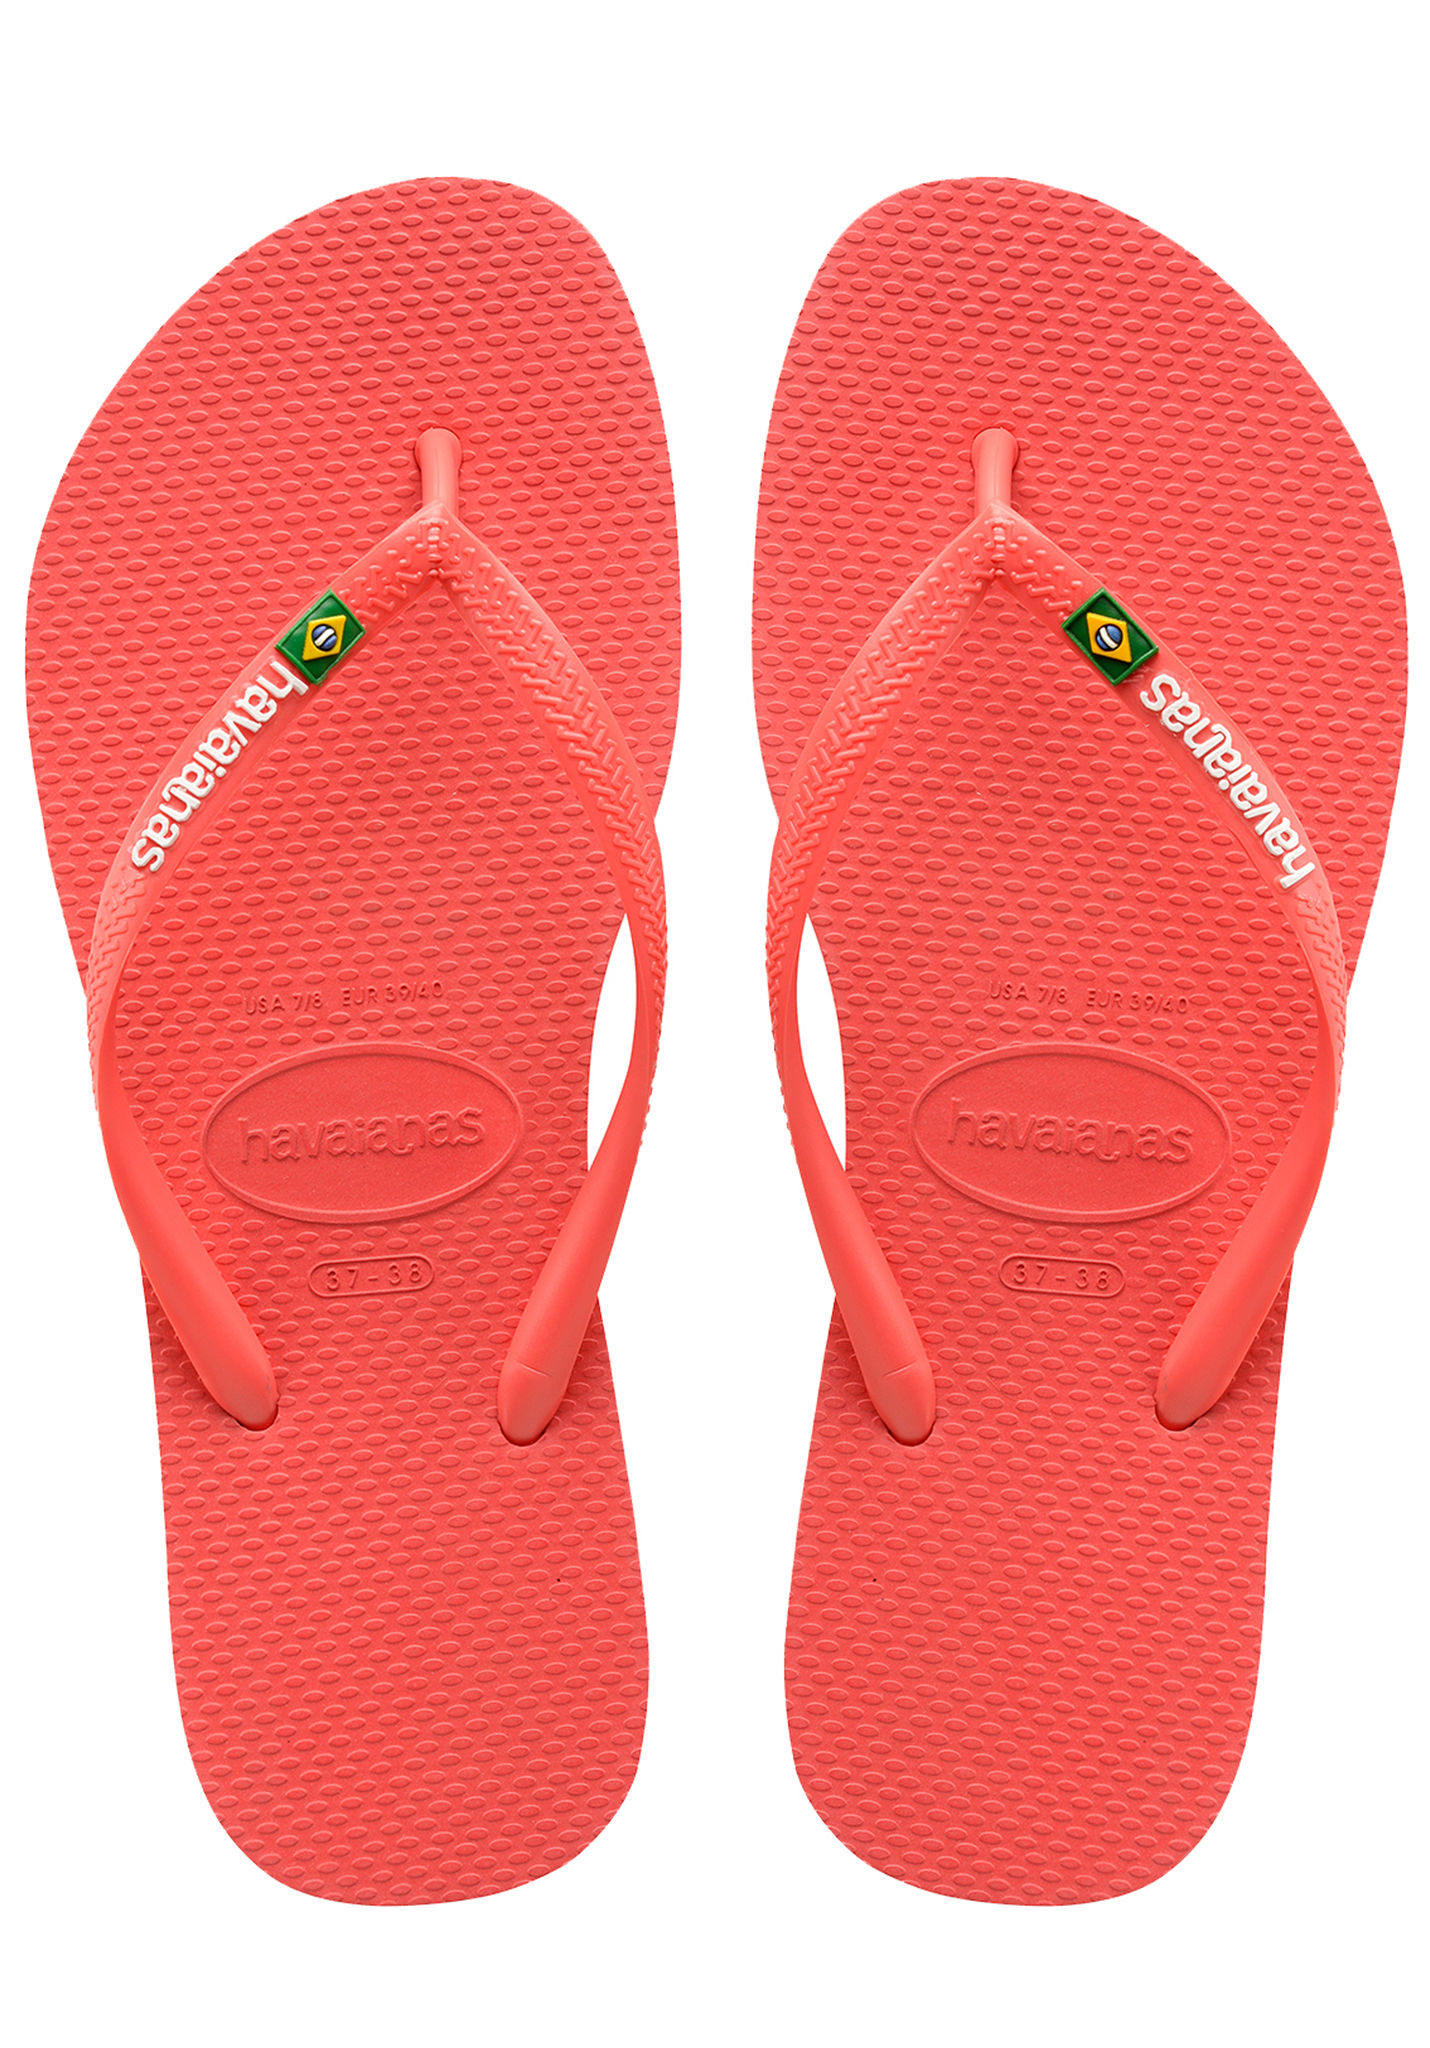 4036168c10943 HAVAIANAS Slim Brasil Logo - Sandals for Women - Red - Planet Sports